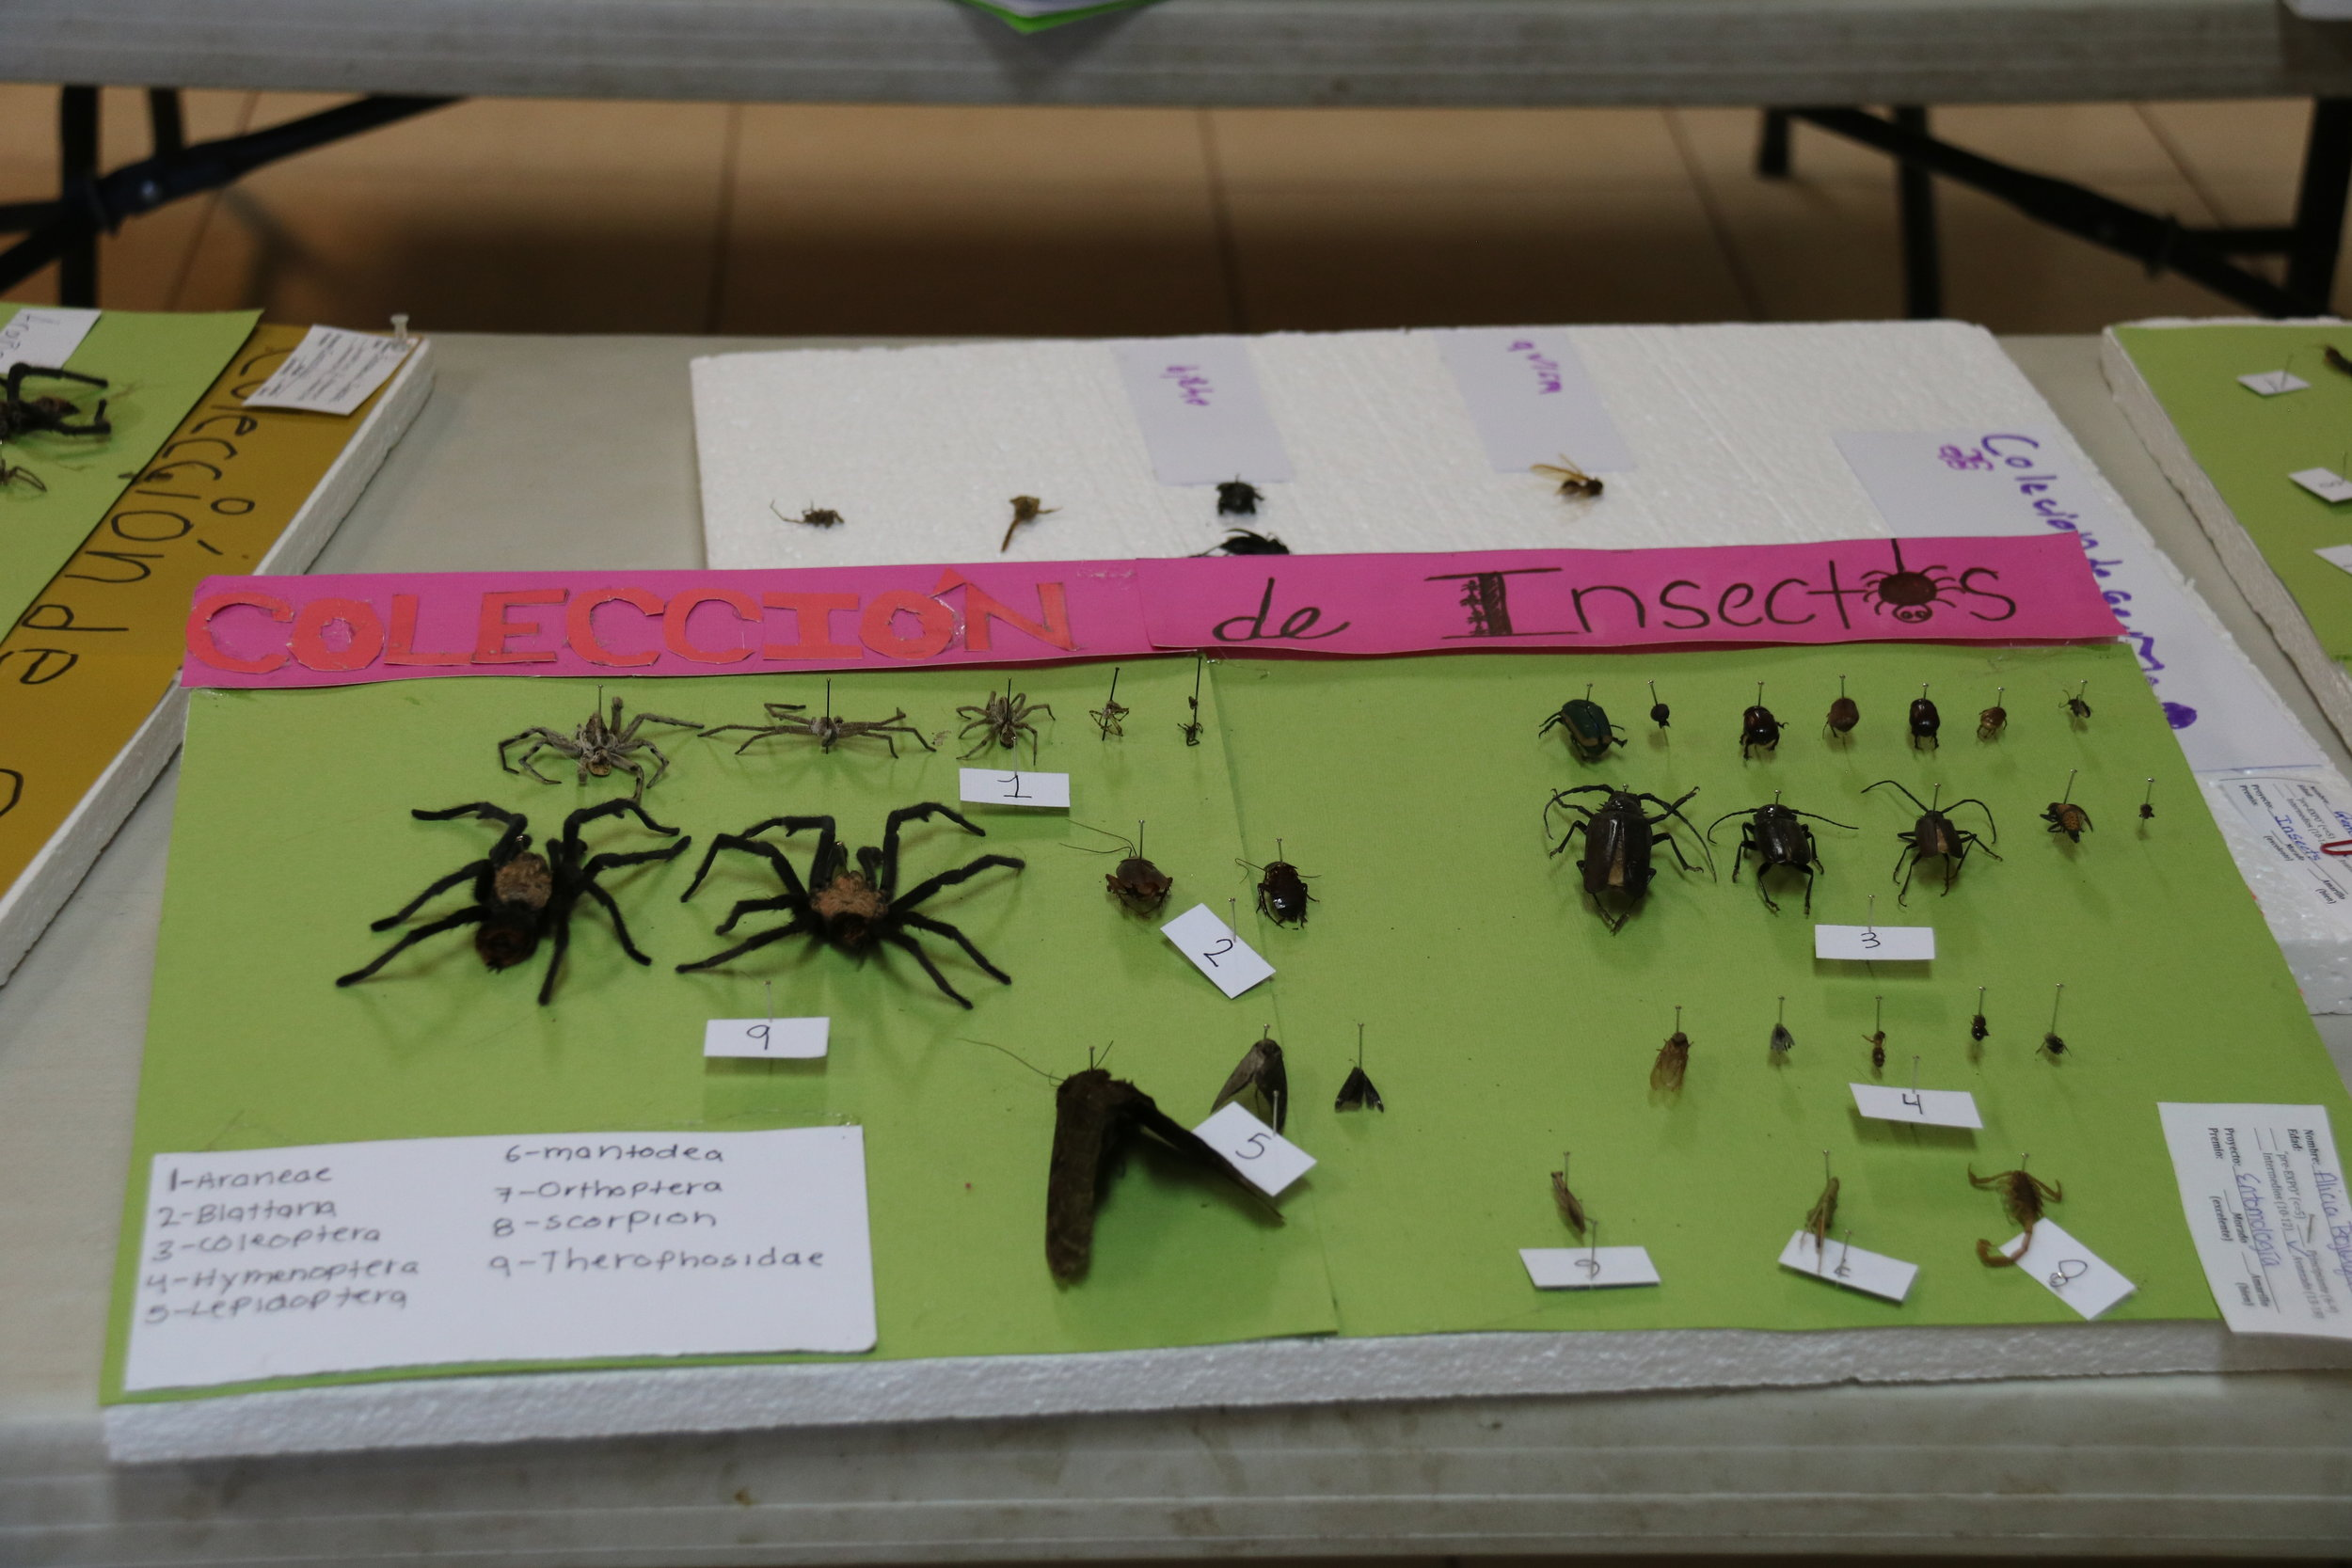 Entomology is a popular project in the Technology discipline. Other projects in Technology include Agronomy, Mecatronics, and Industrial Arts.